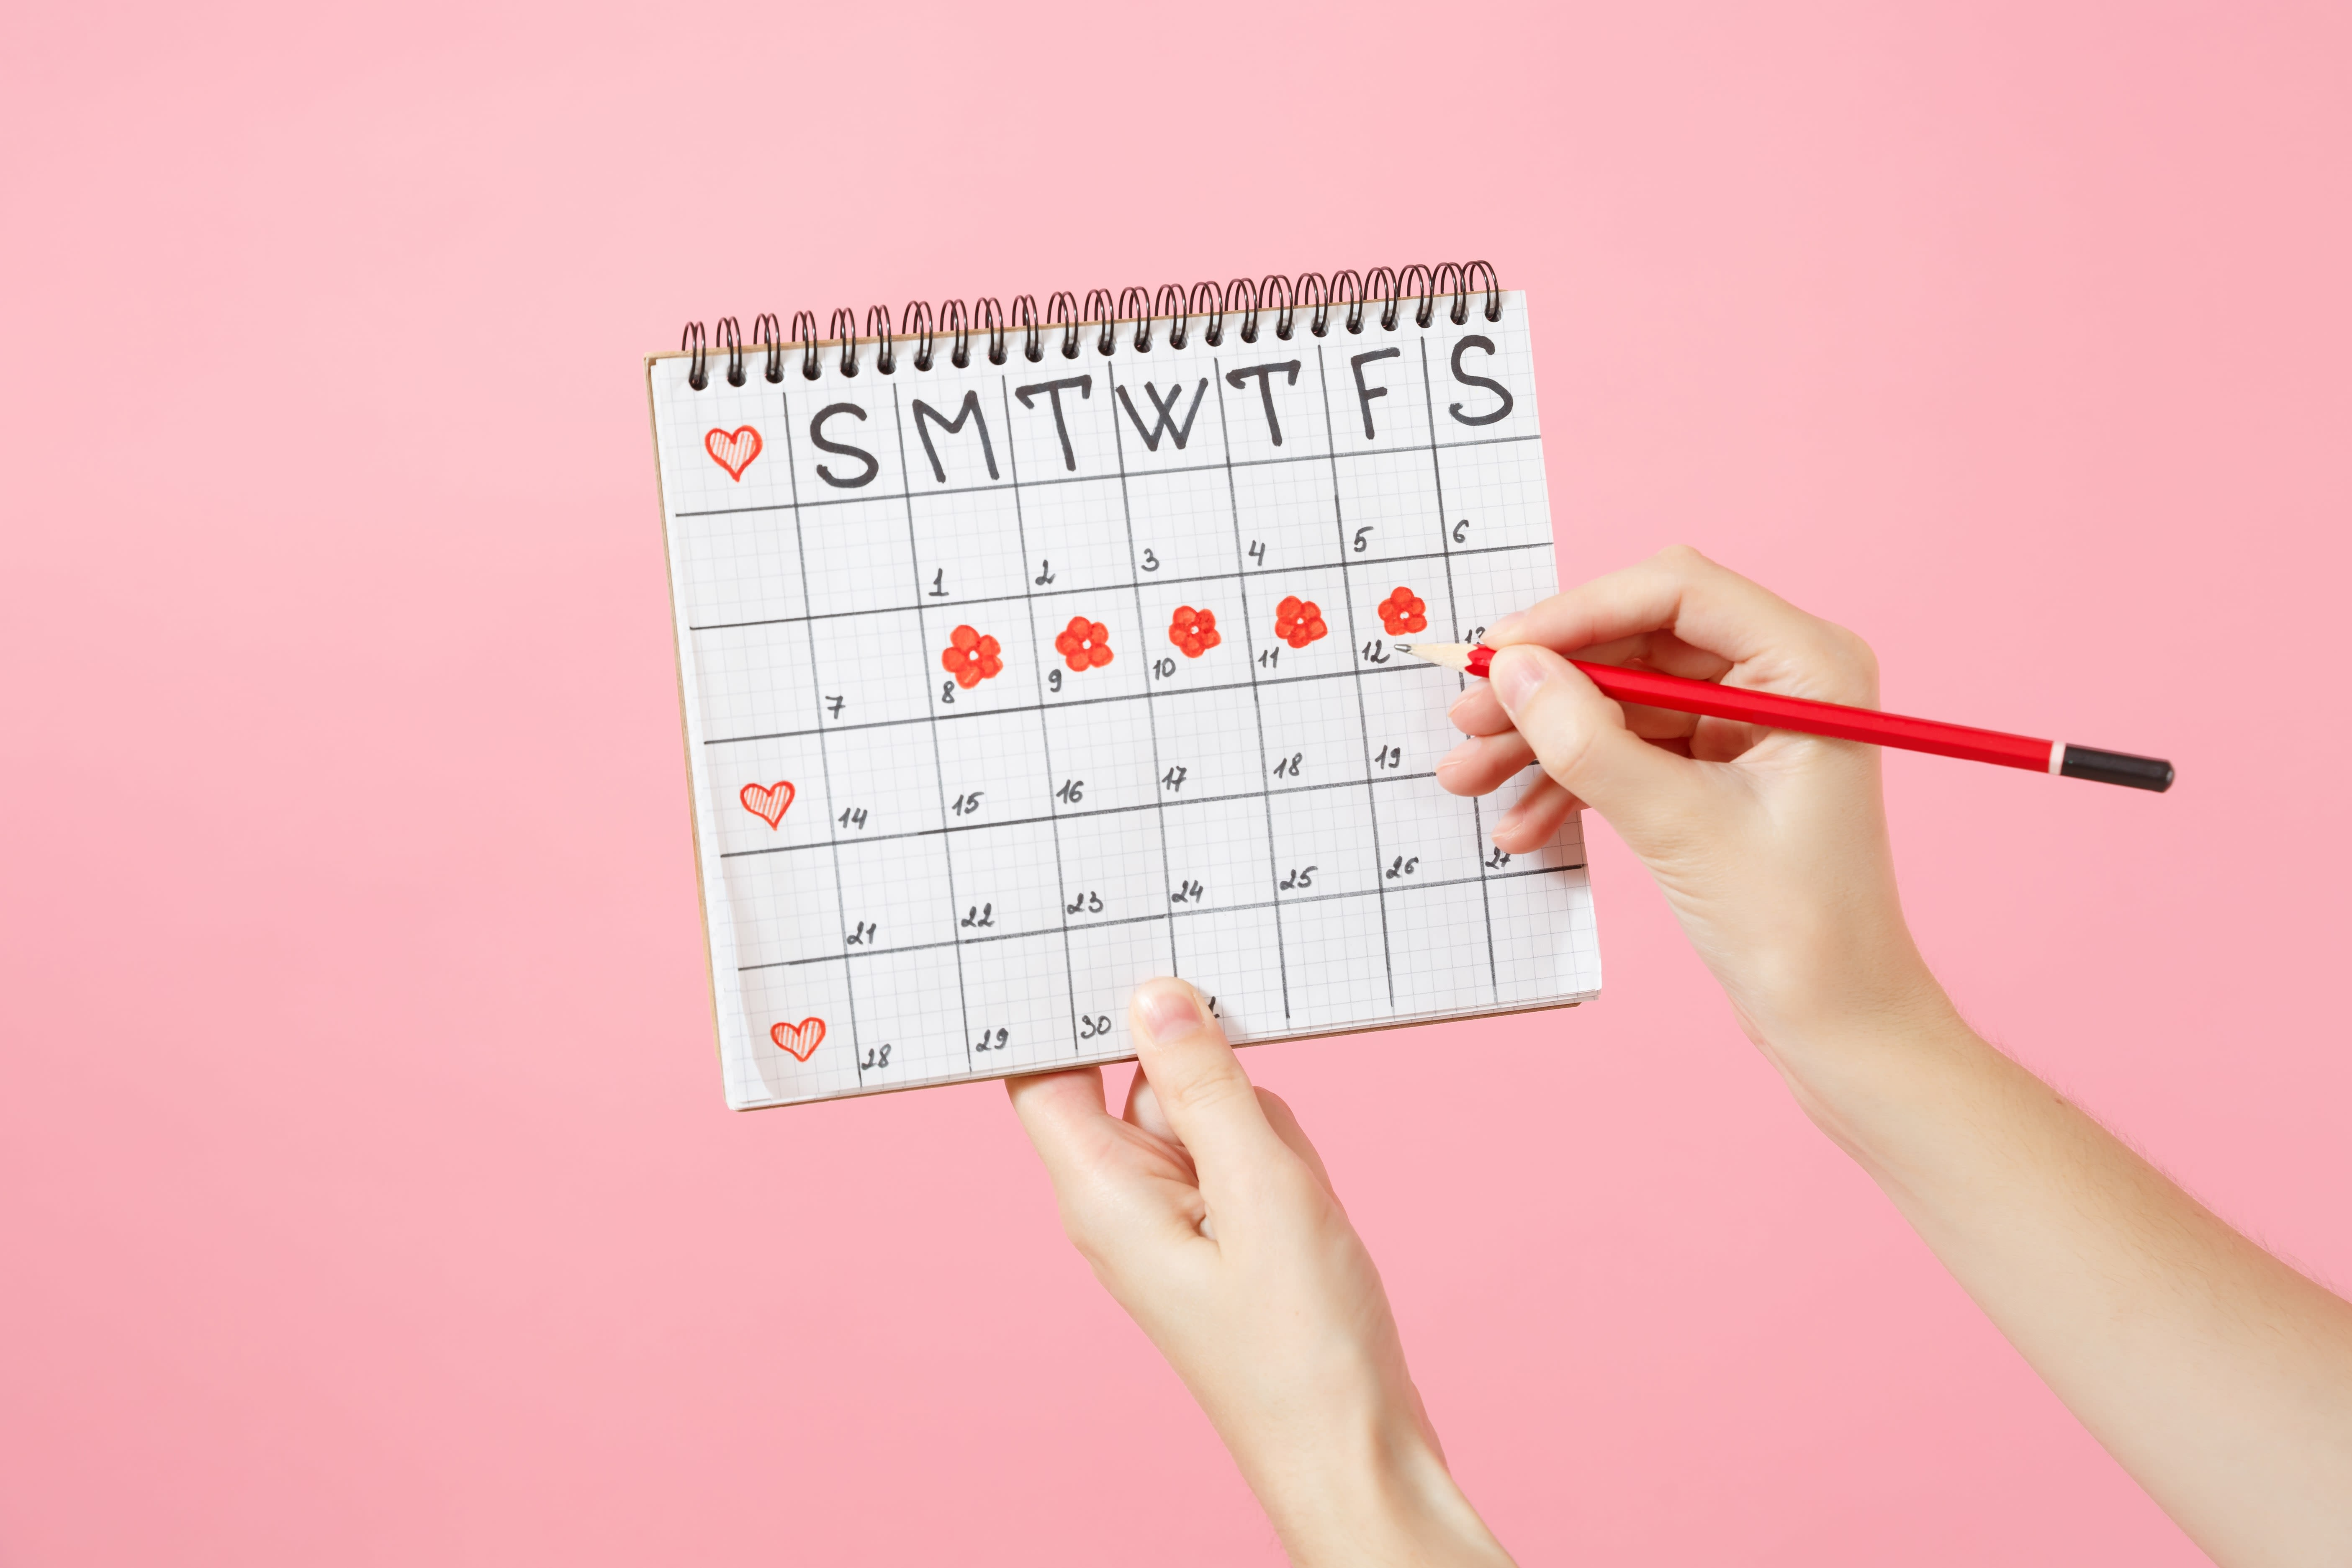 Drawing of a calendar in a notebook shown against a pink background